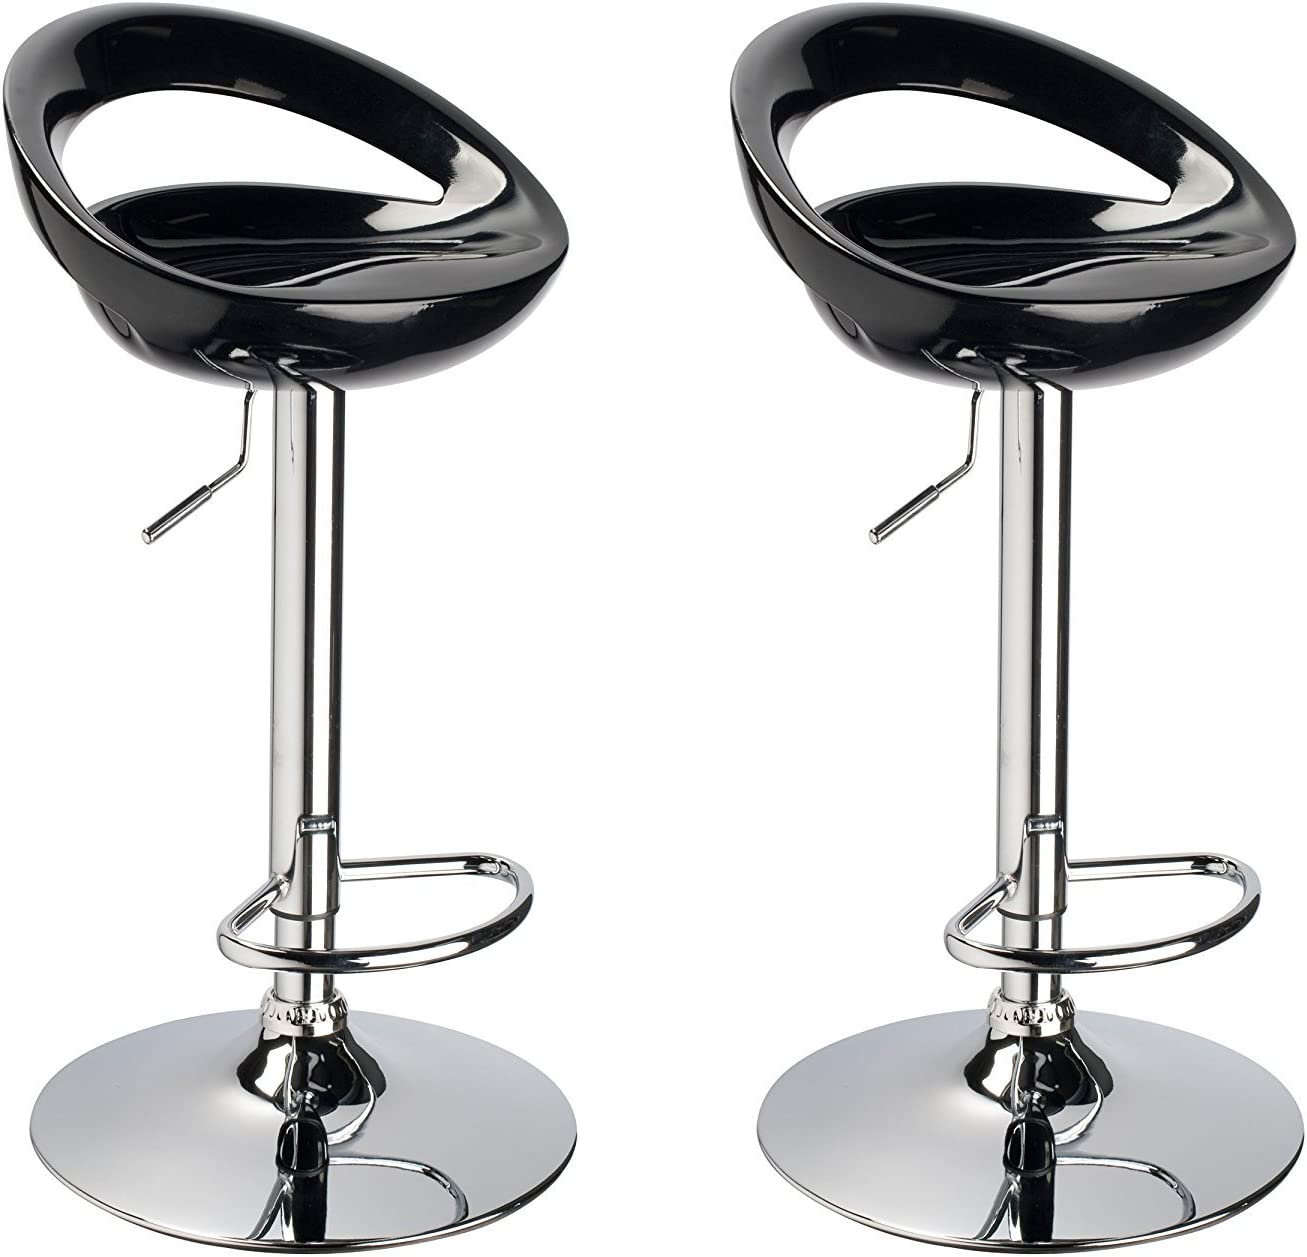 Duhome 2 PCS Contemporary Swizzle Gloss Finish Crescent Shape Adjustable Swivel Bar Stools Kitchen Counter Island Pub Stool